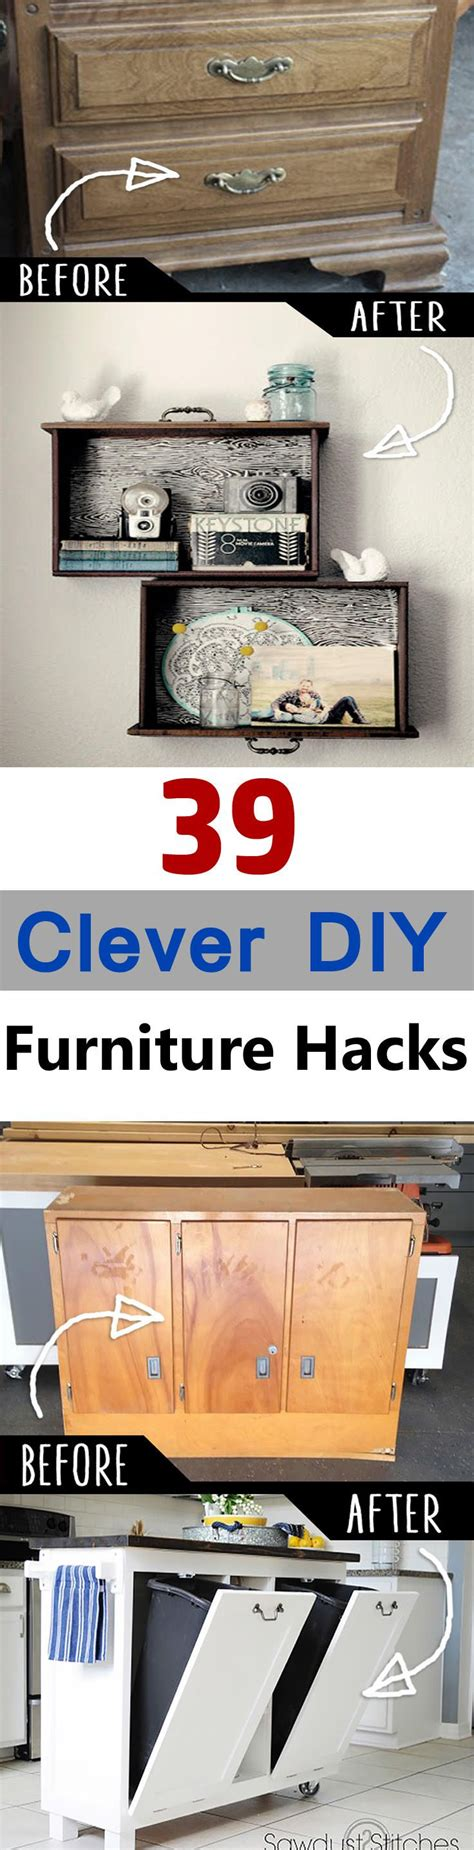 diy furniture hacks diy furniture hacks and furniture on pinterest